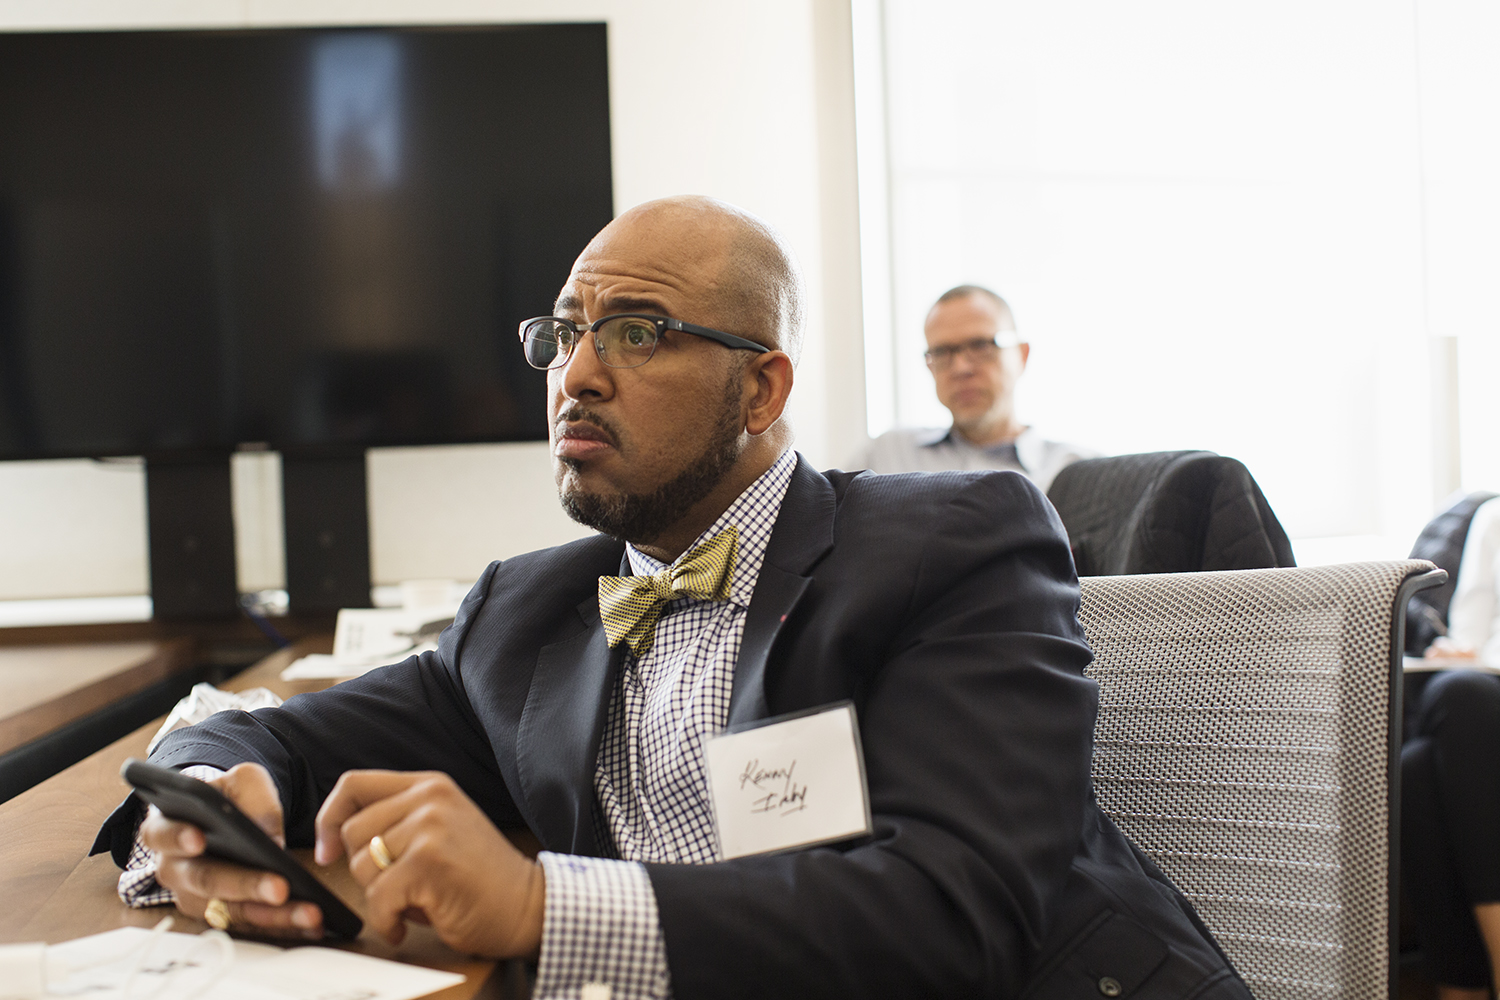 Kenny Irby (Poynter Institute) listens during panel at Image Truth/Story Truth conference, Columbia Journalism School, NY, NY, October 16, 2015